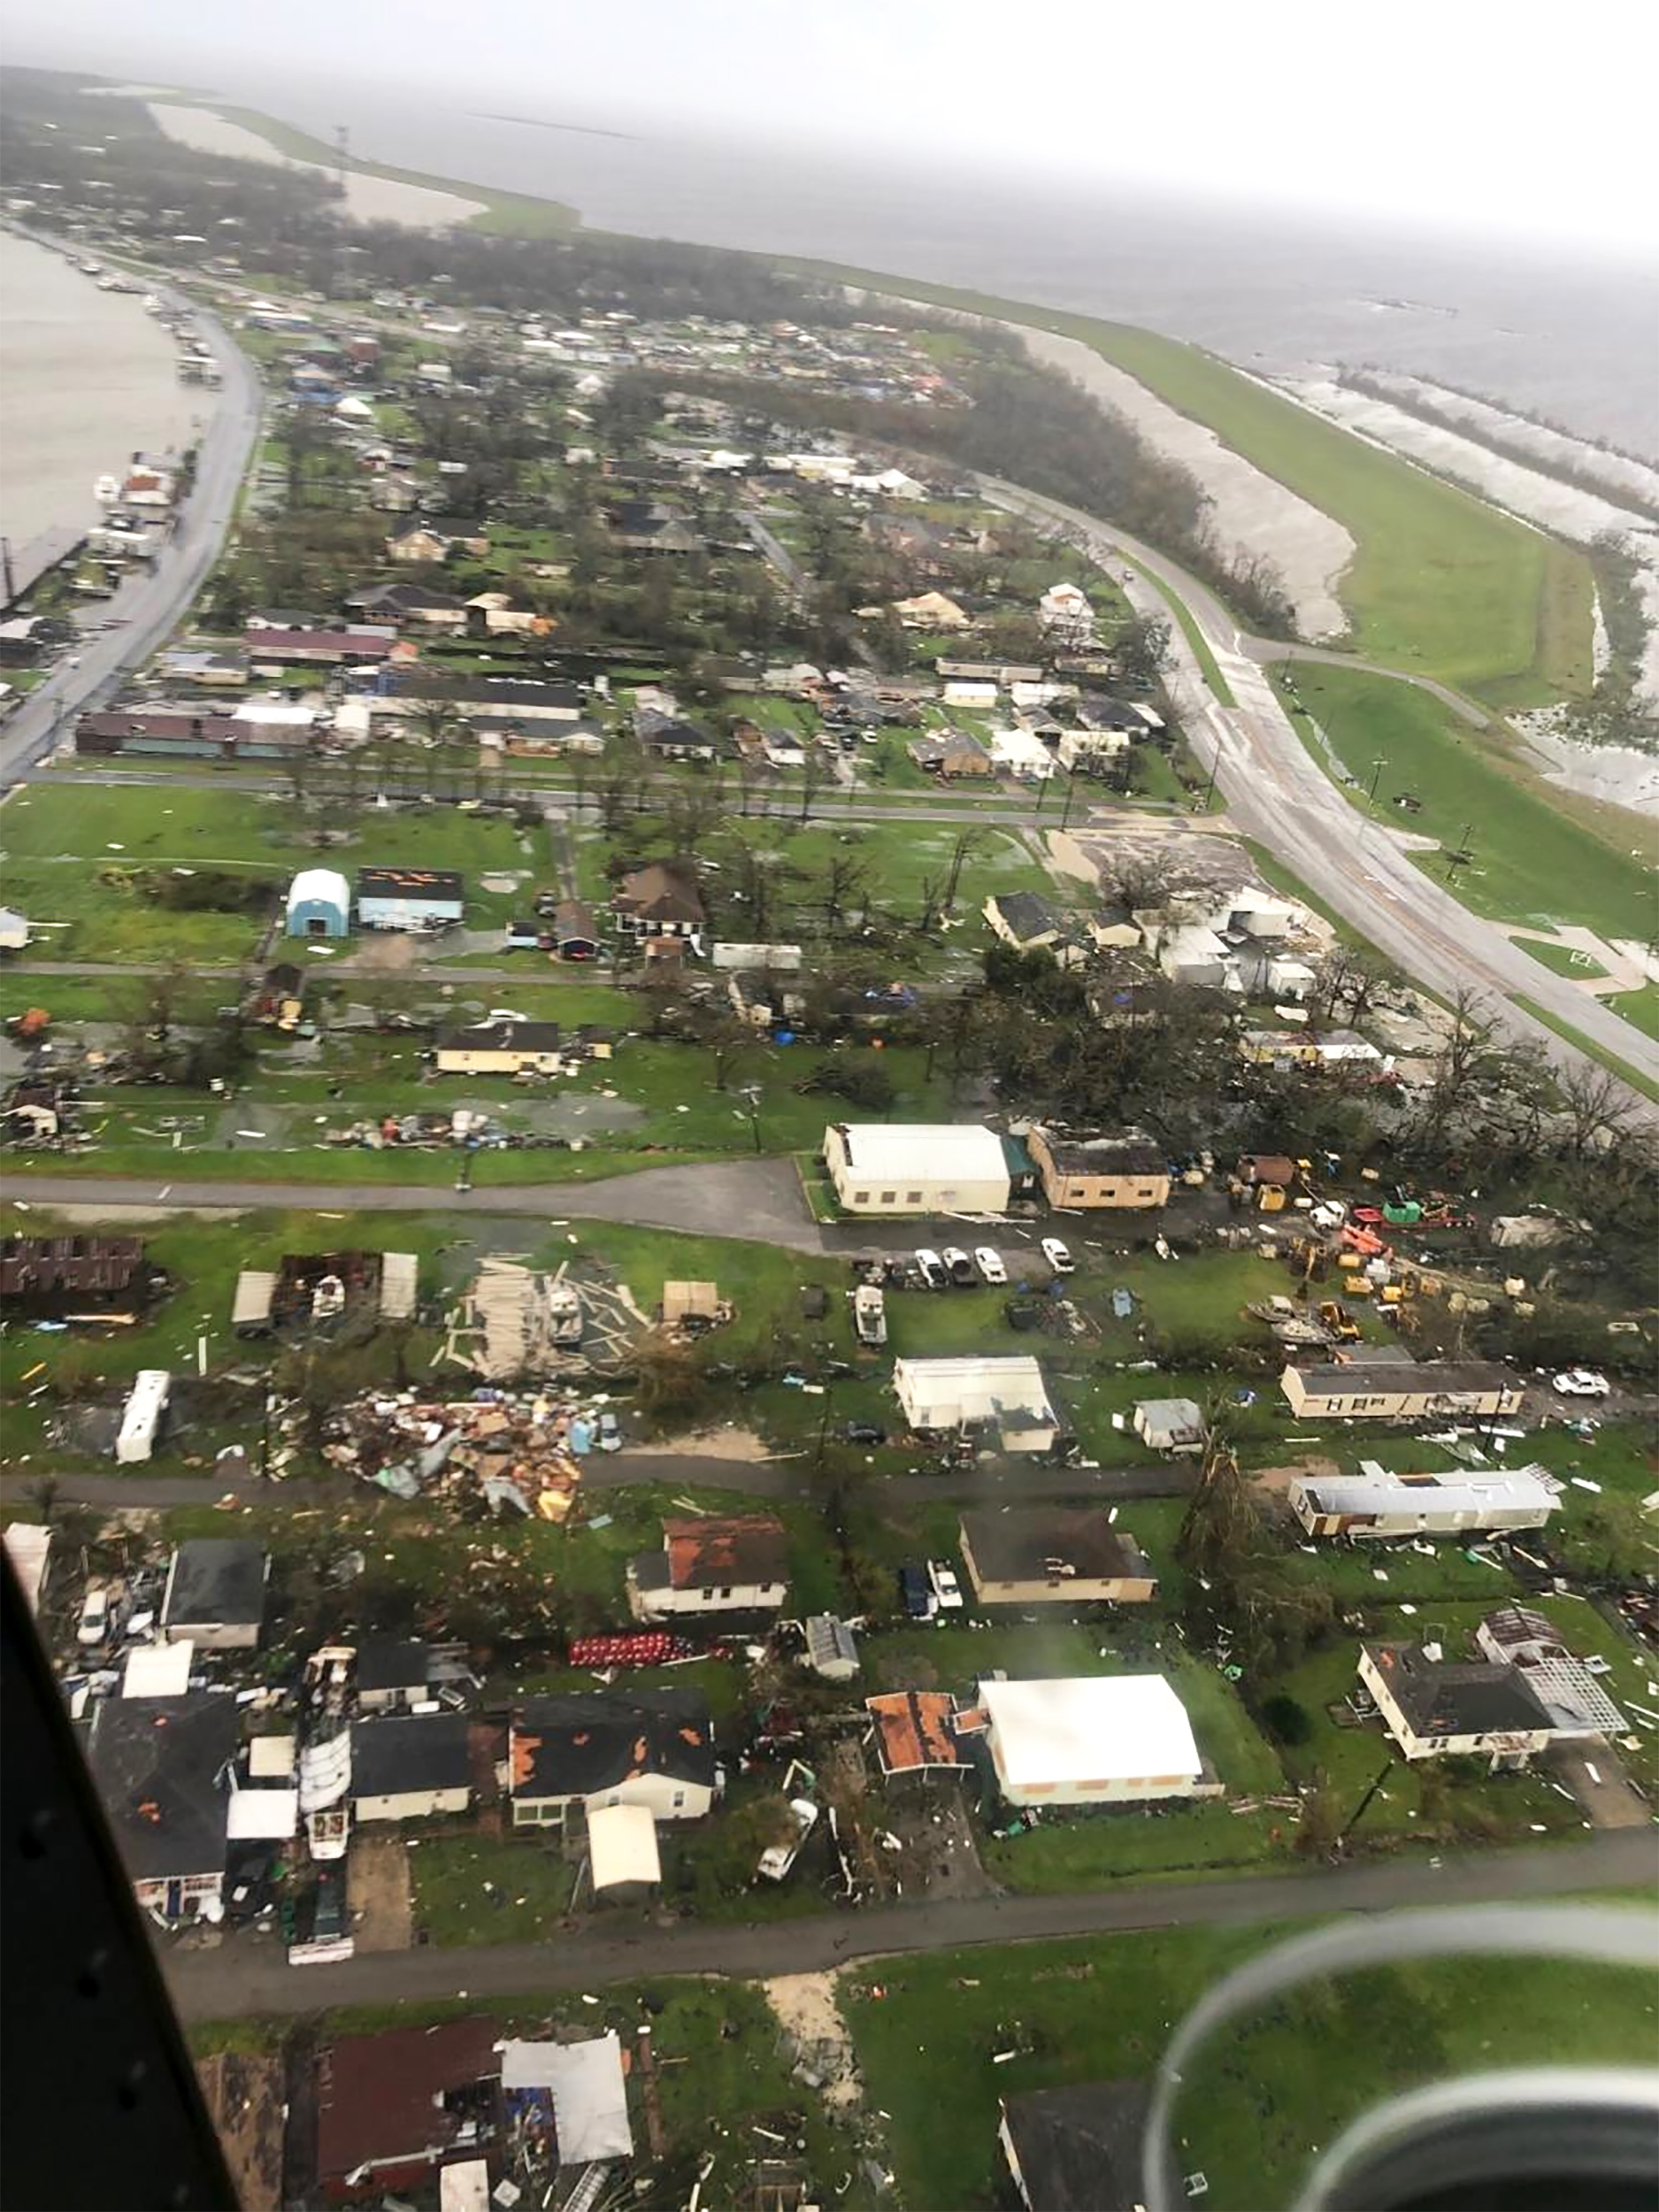 Aerial video, images illustrate scale of damage left by Hurricane Ida in Louisiana